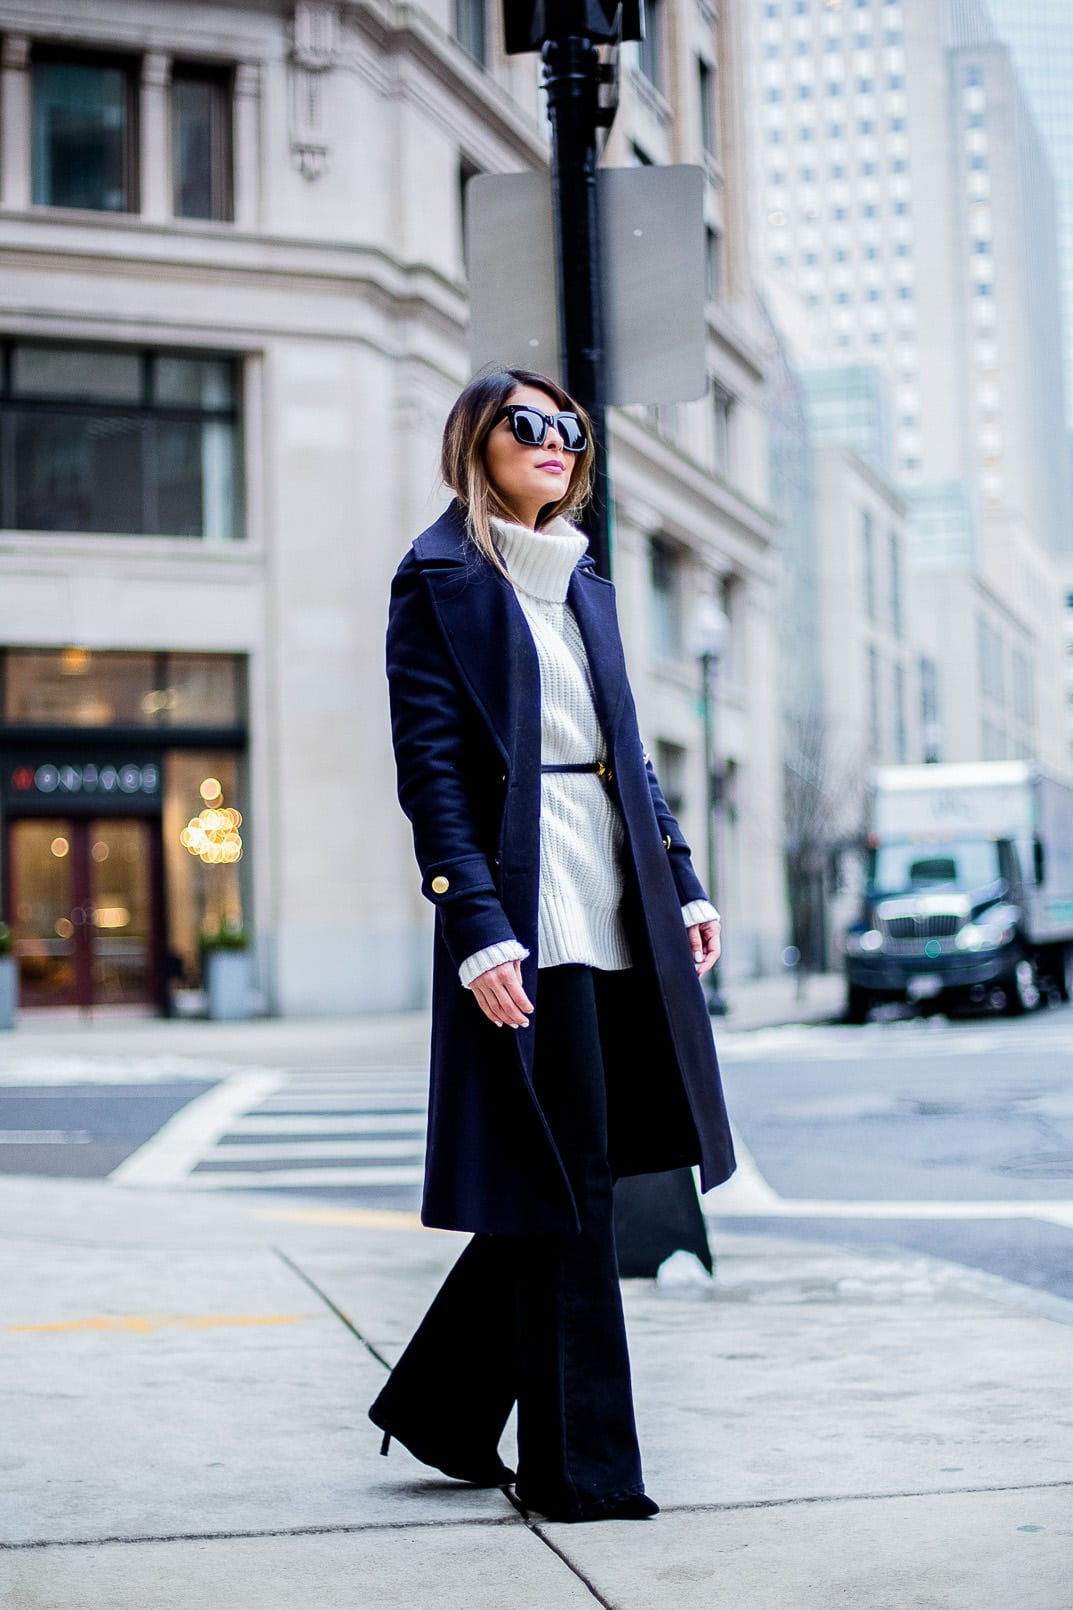 Pam Hetlinger, The Girl From Panama wearing an h&m navy coat, celine sunglasses, thin belt, mango flare jeans, white turtleneck sweater and chloe georgia bag.